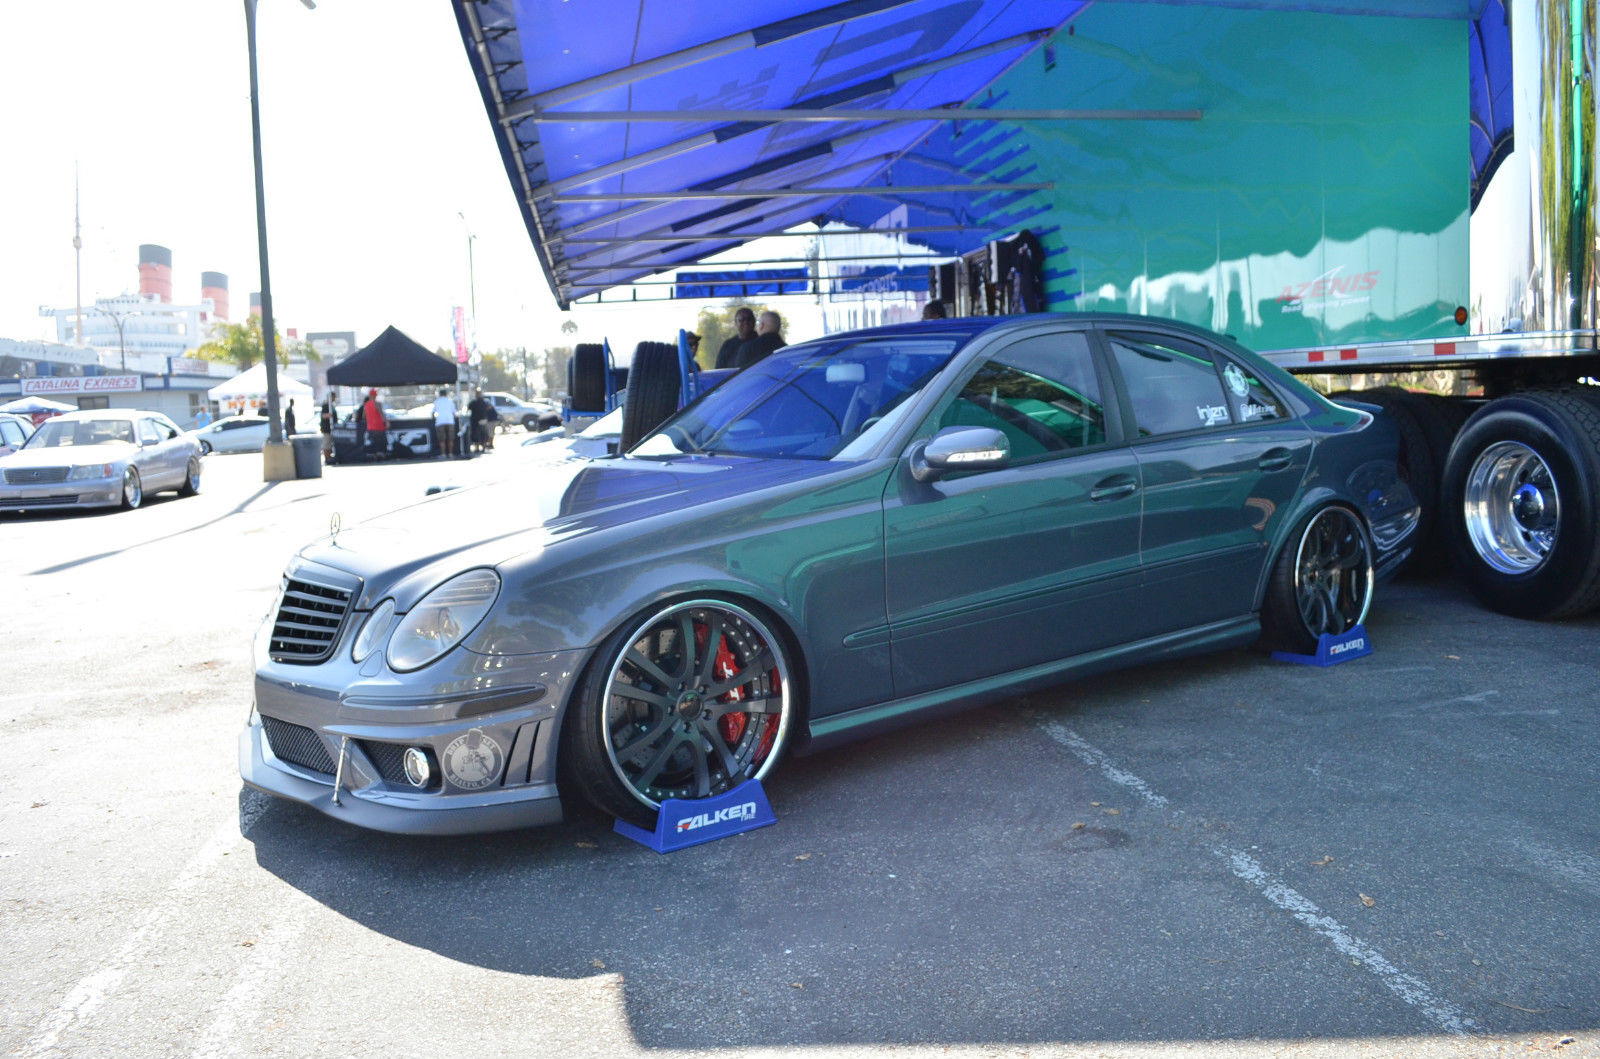 Watch additionally 2016 Mercedes Benz C Class Release Date besides E5406ad57c24603d further Watch together with Mercedes Benz E Klasse Coupe Vossen Wheels Autos Rot. on 2016 mercedes benz e350